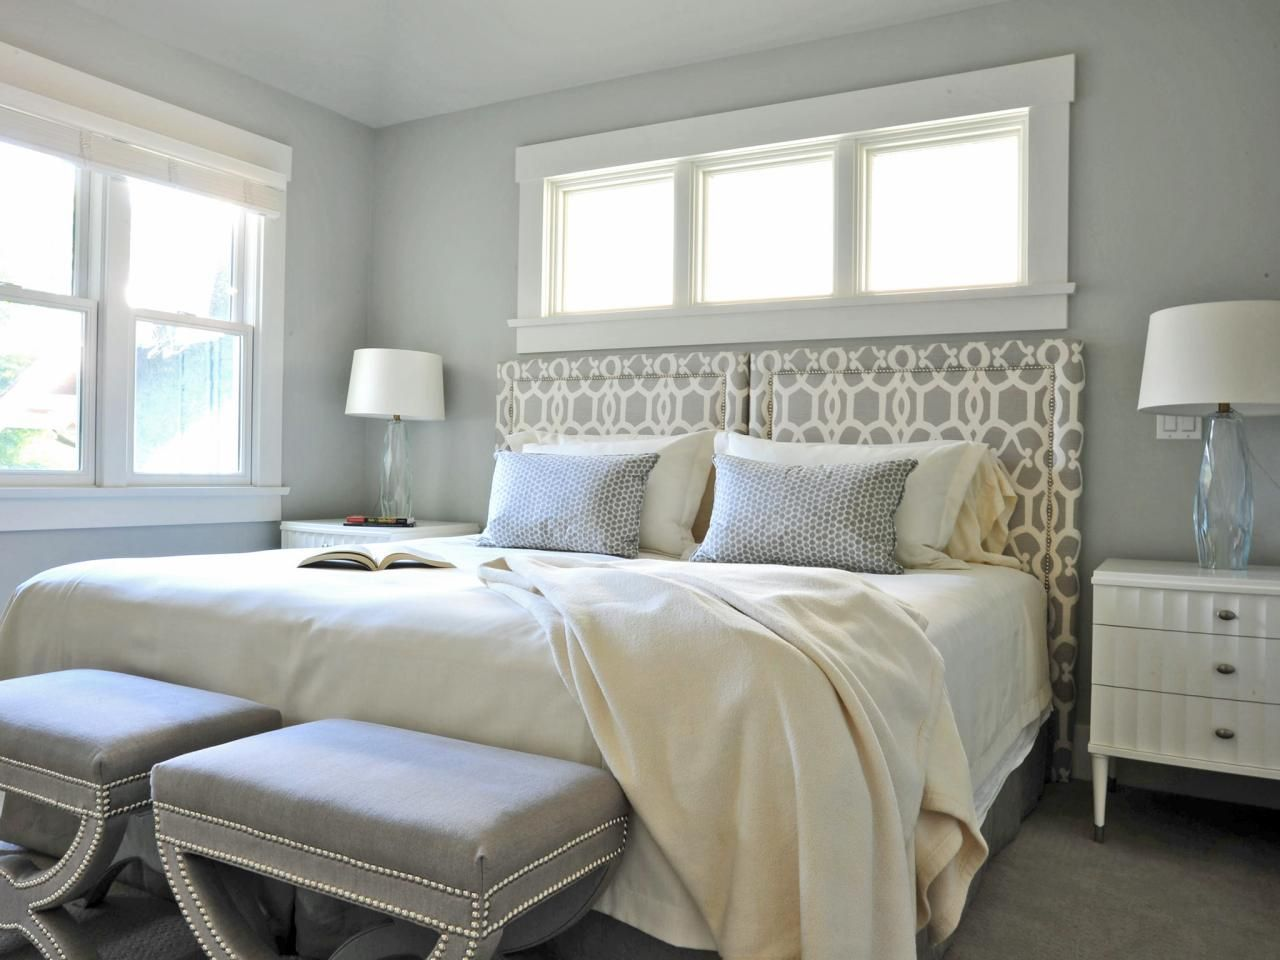 beautiful bedrooms 15 shades of gray grey blue white